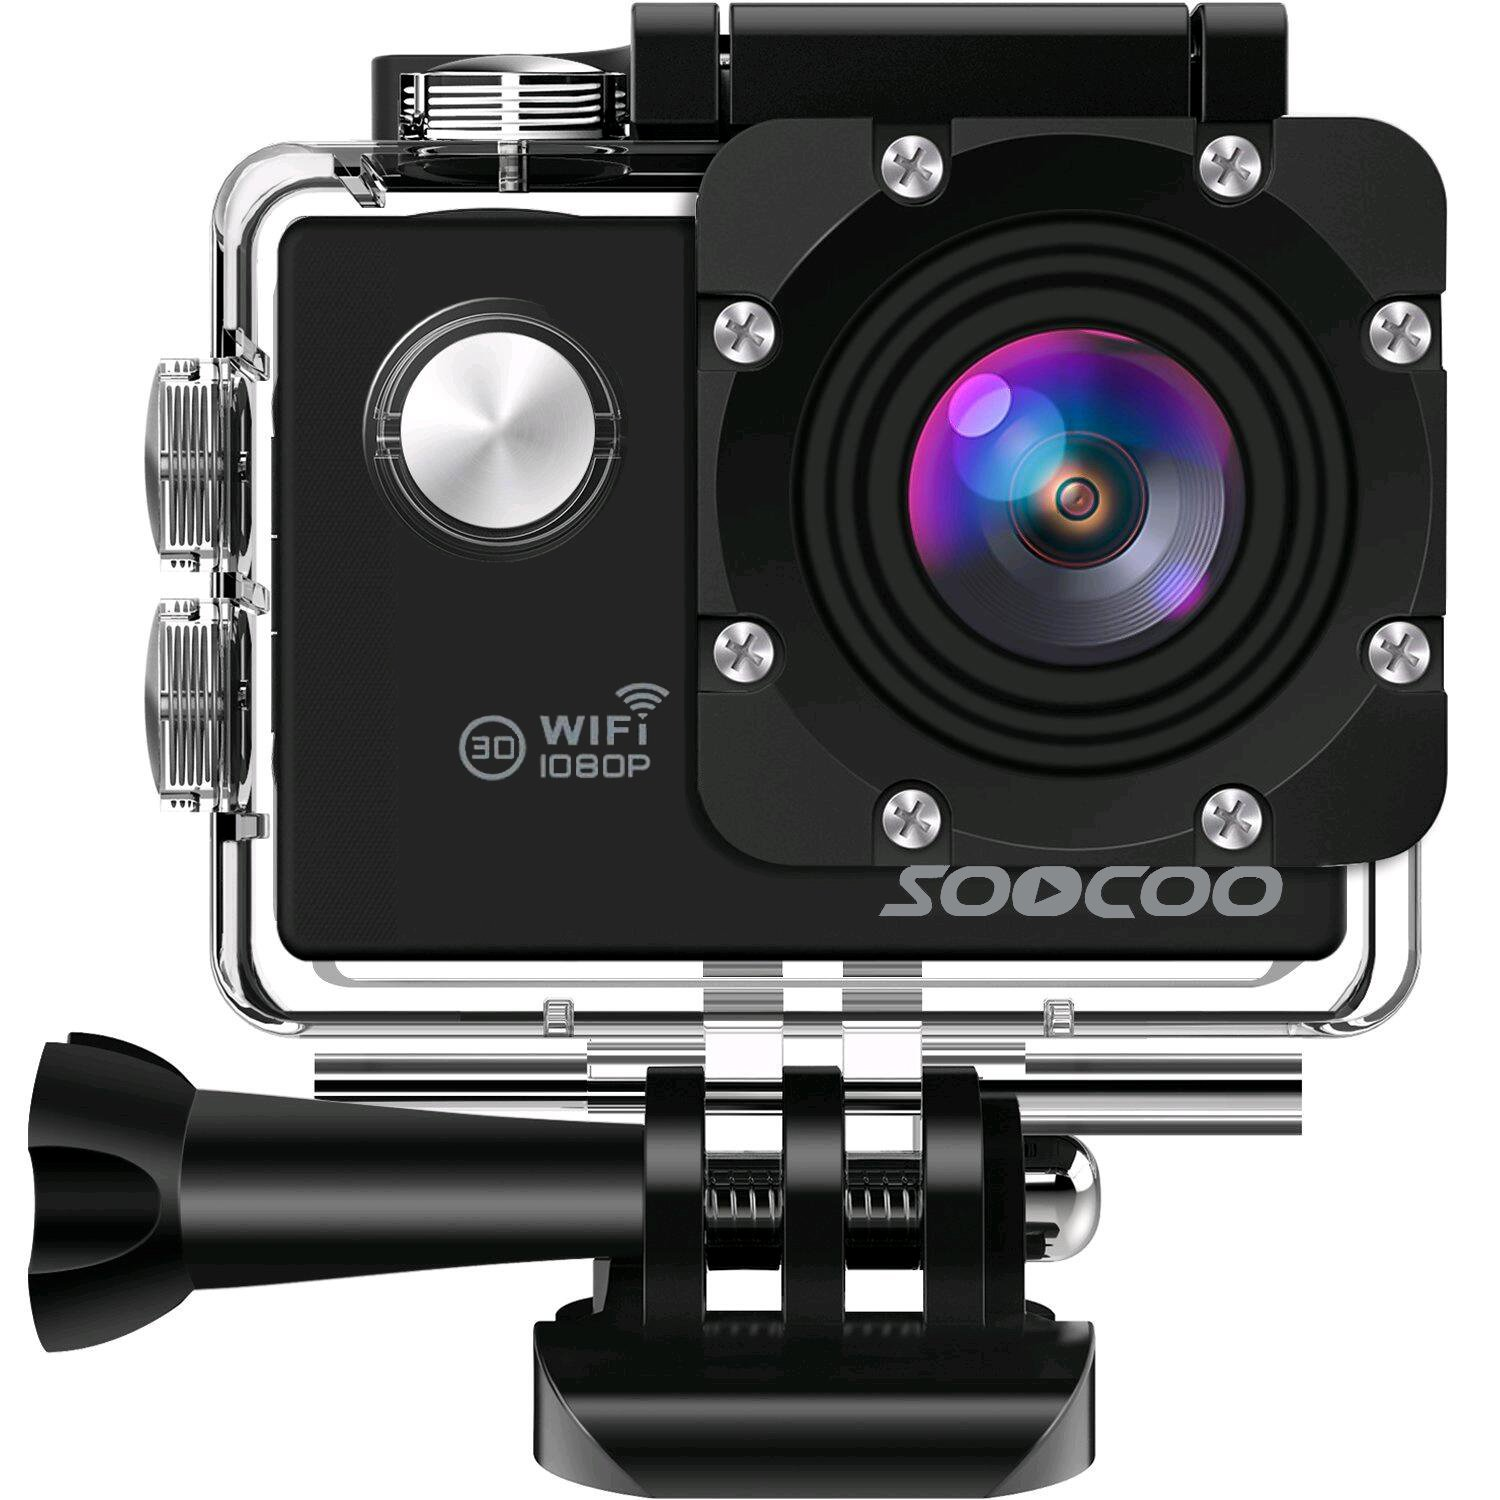 WIFI Action Camera, SOOCOO Sports Video Camera Waterproof 12MP Full HD 1080P 2.0'' LCD 170 degree Wide Angle, 30M/98ft Underwater Diving Camera Camcorder with 2 Batteries (SD Card Not Included)-Black